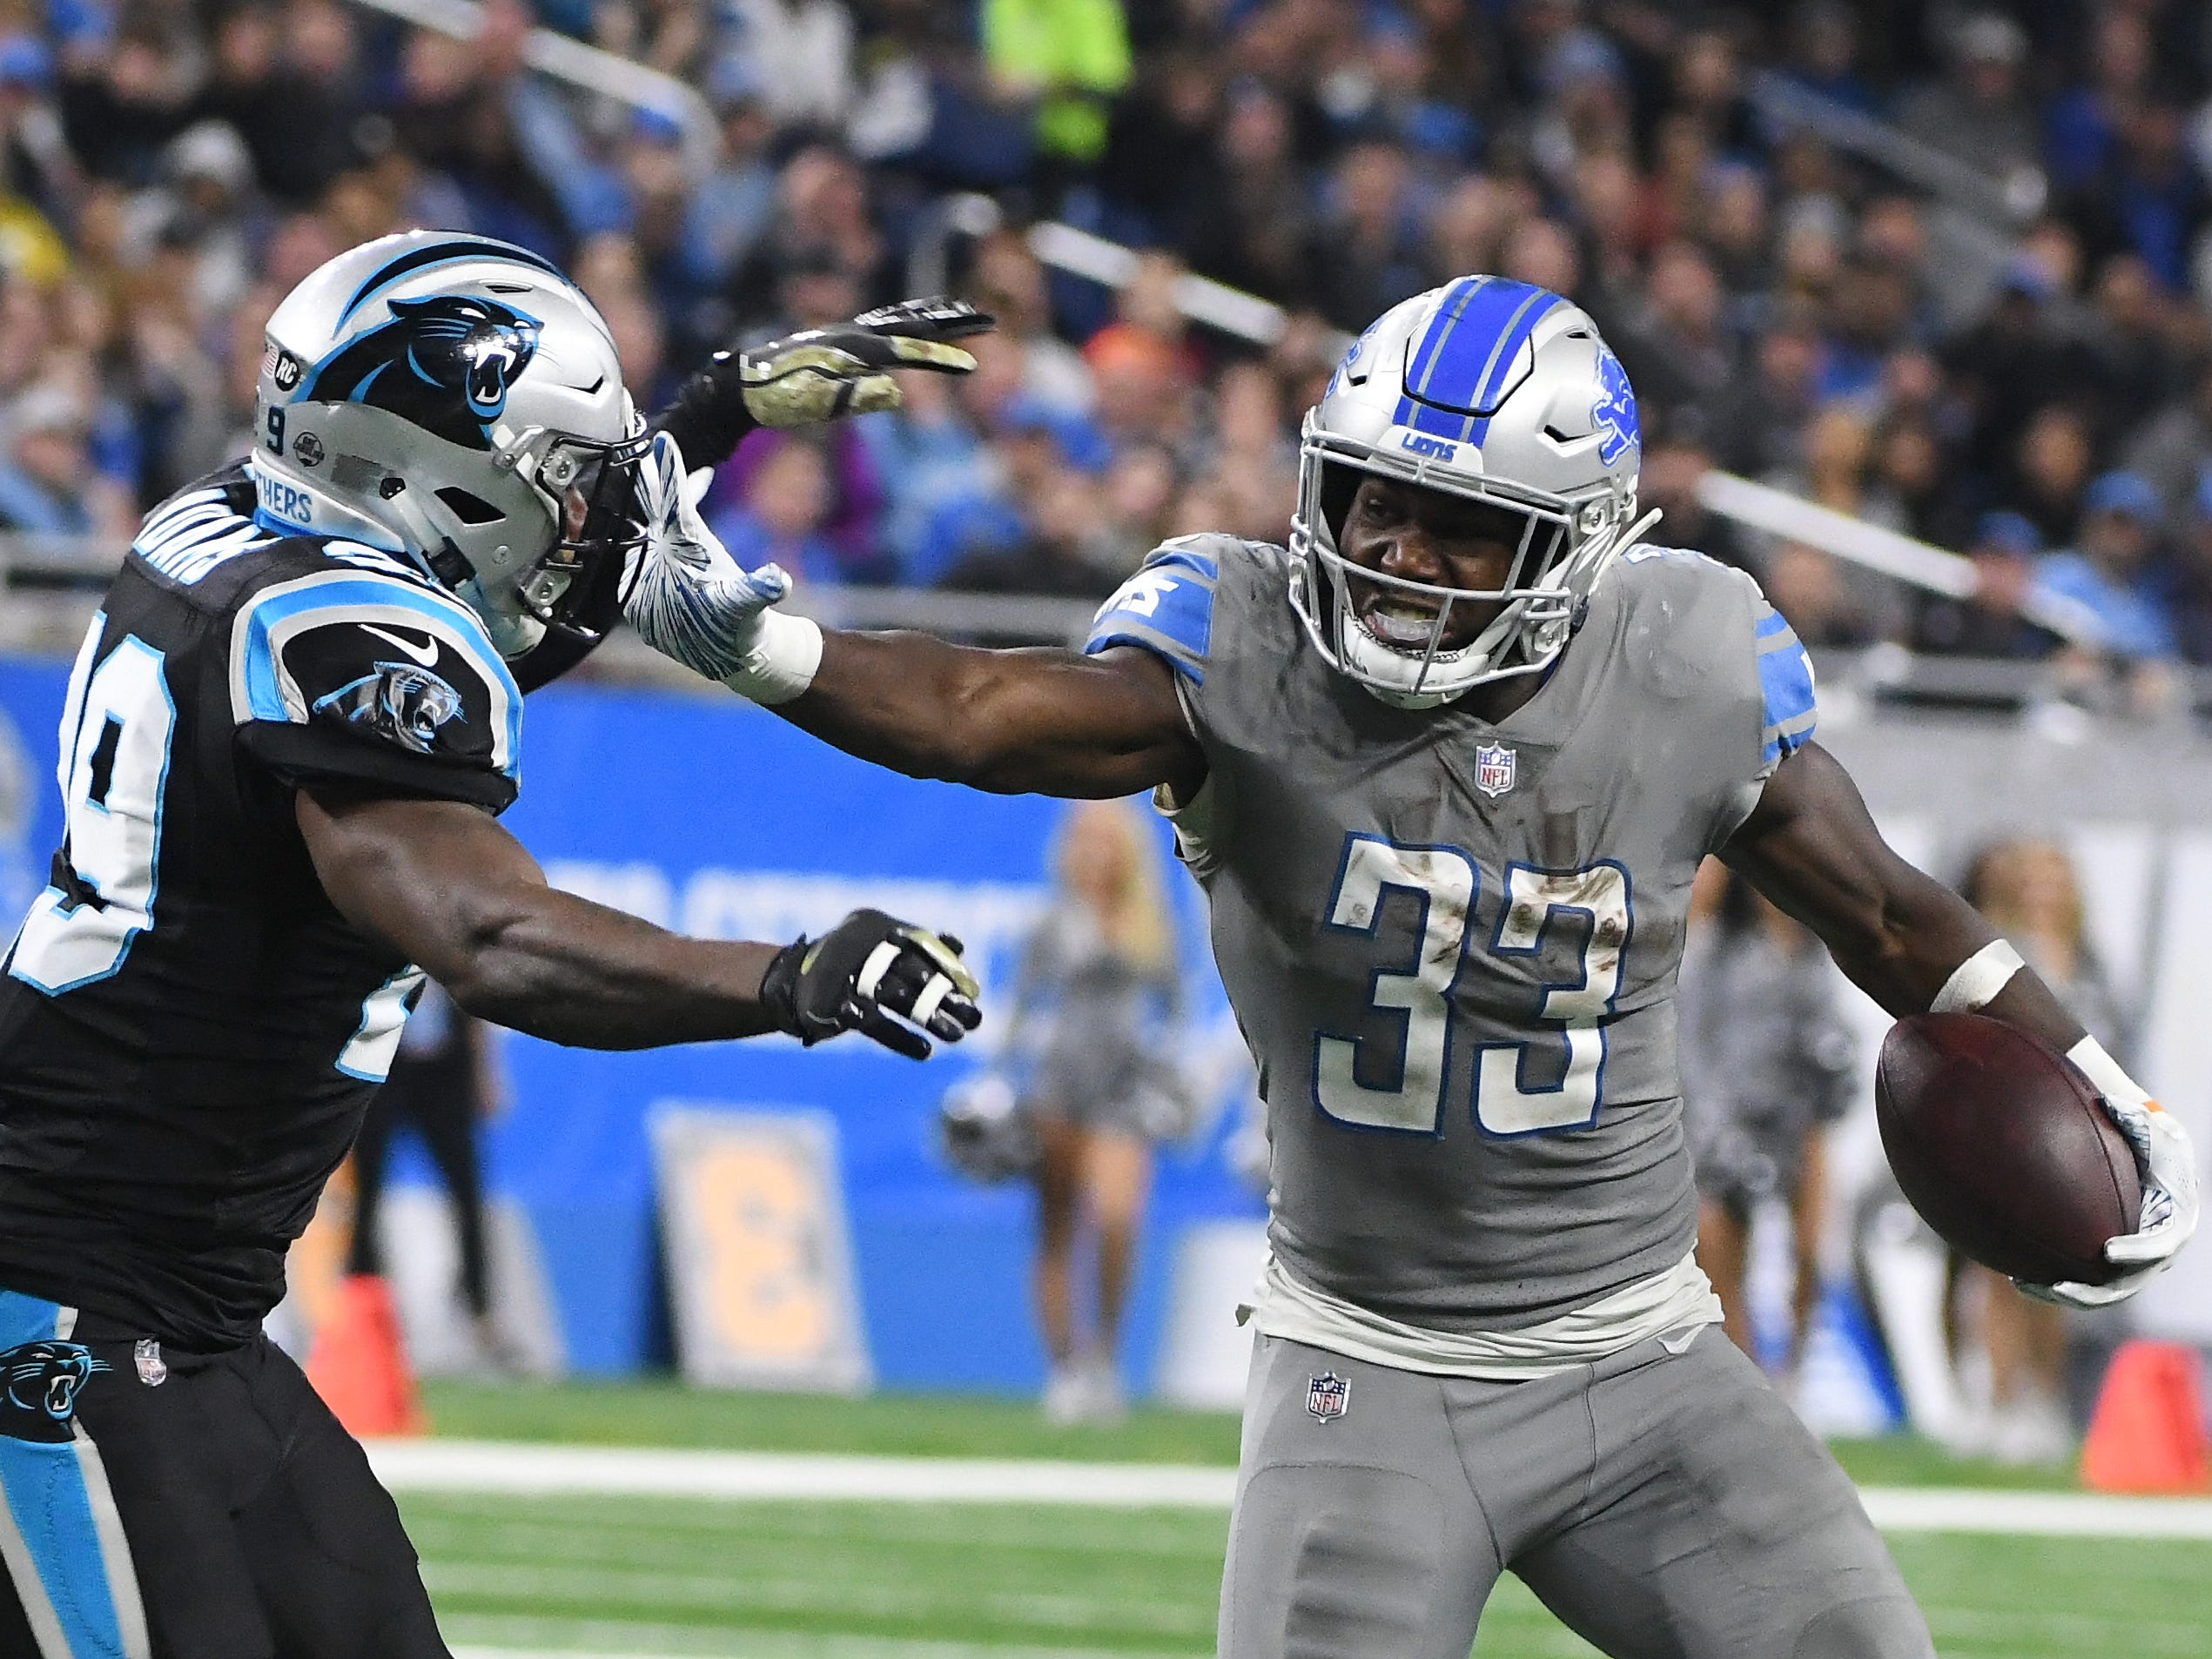 Lions running back Kerryon Johnson stiff arms Panthers' Mike Adams on a run in the third quarter.